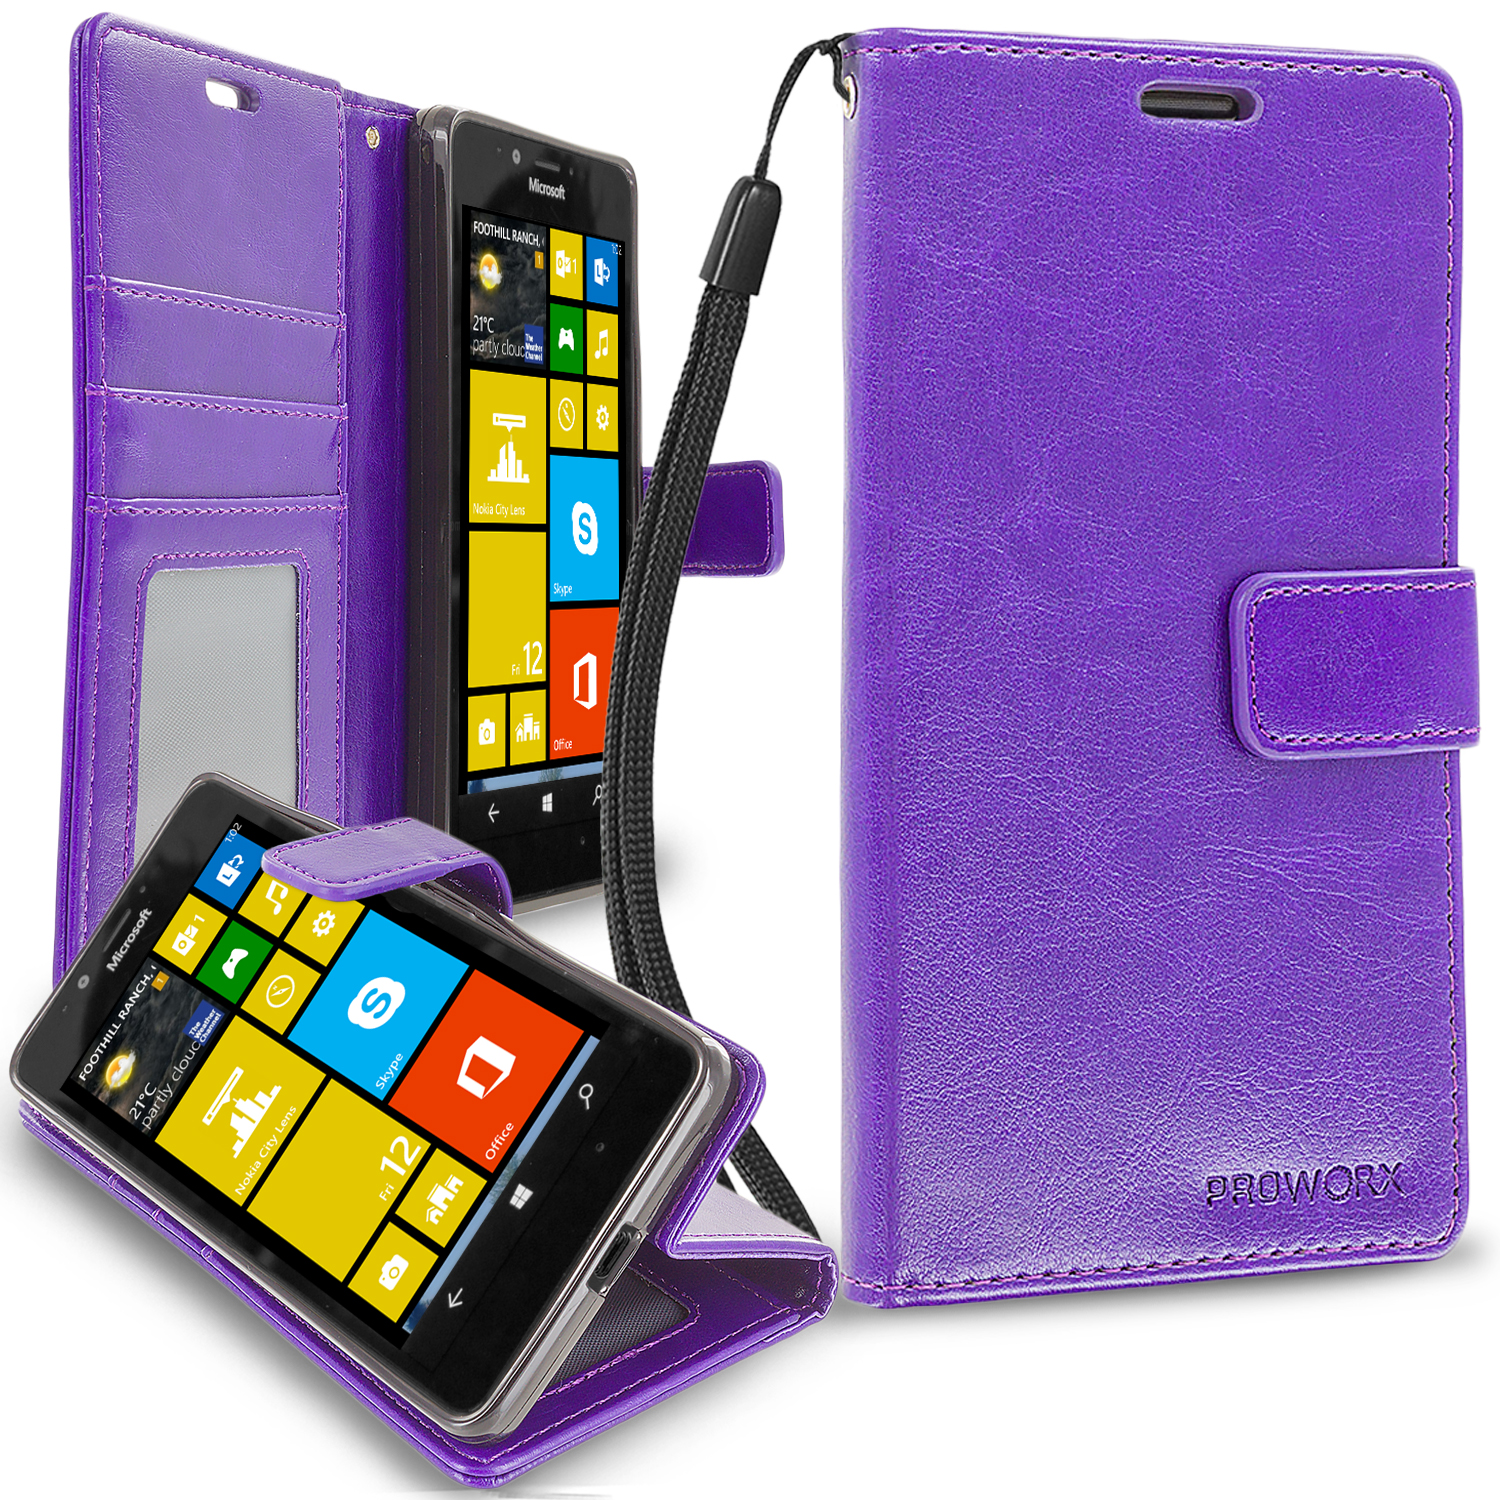 Microsoft Lumia 950 Purple ProWorx Wallet Case Luxury PU Leather Case Cover With Card Slots & Stand